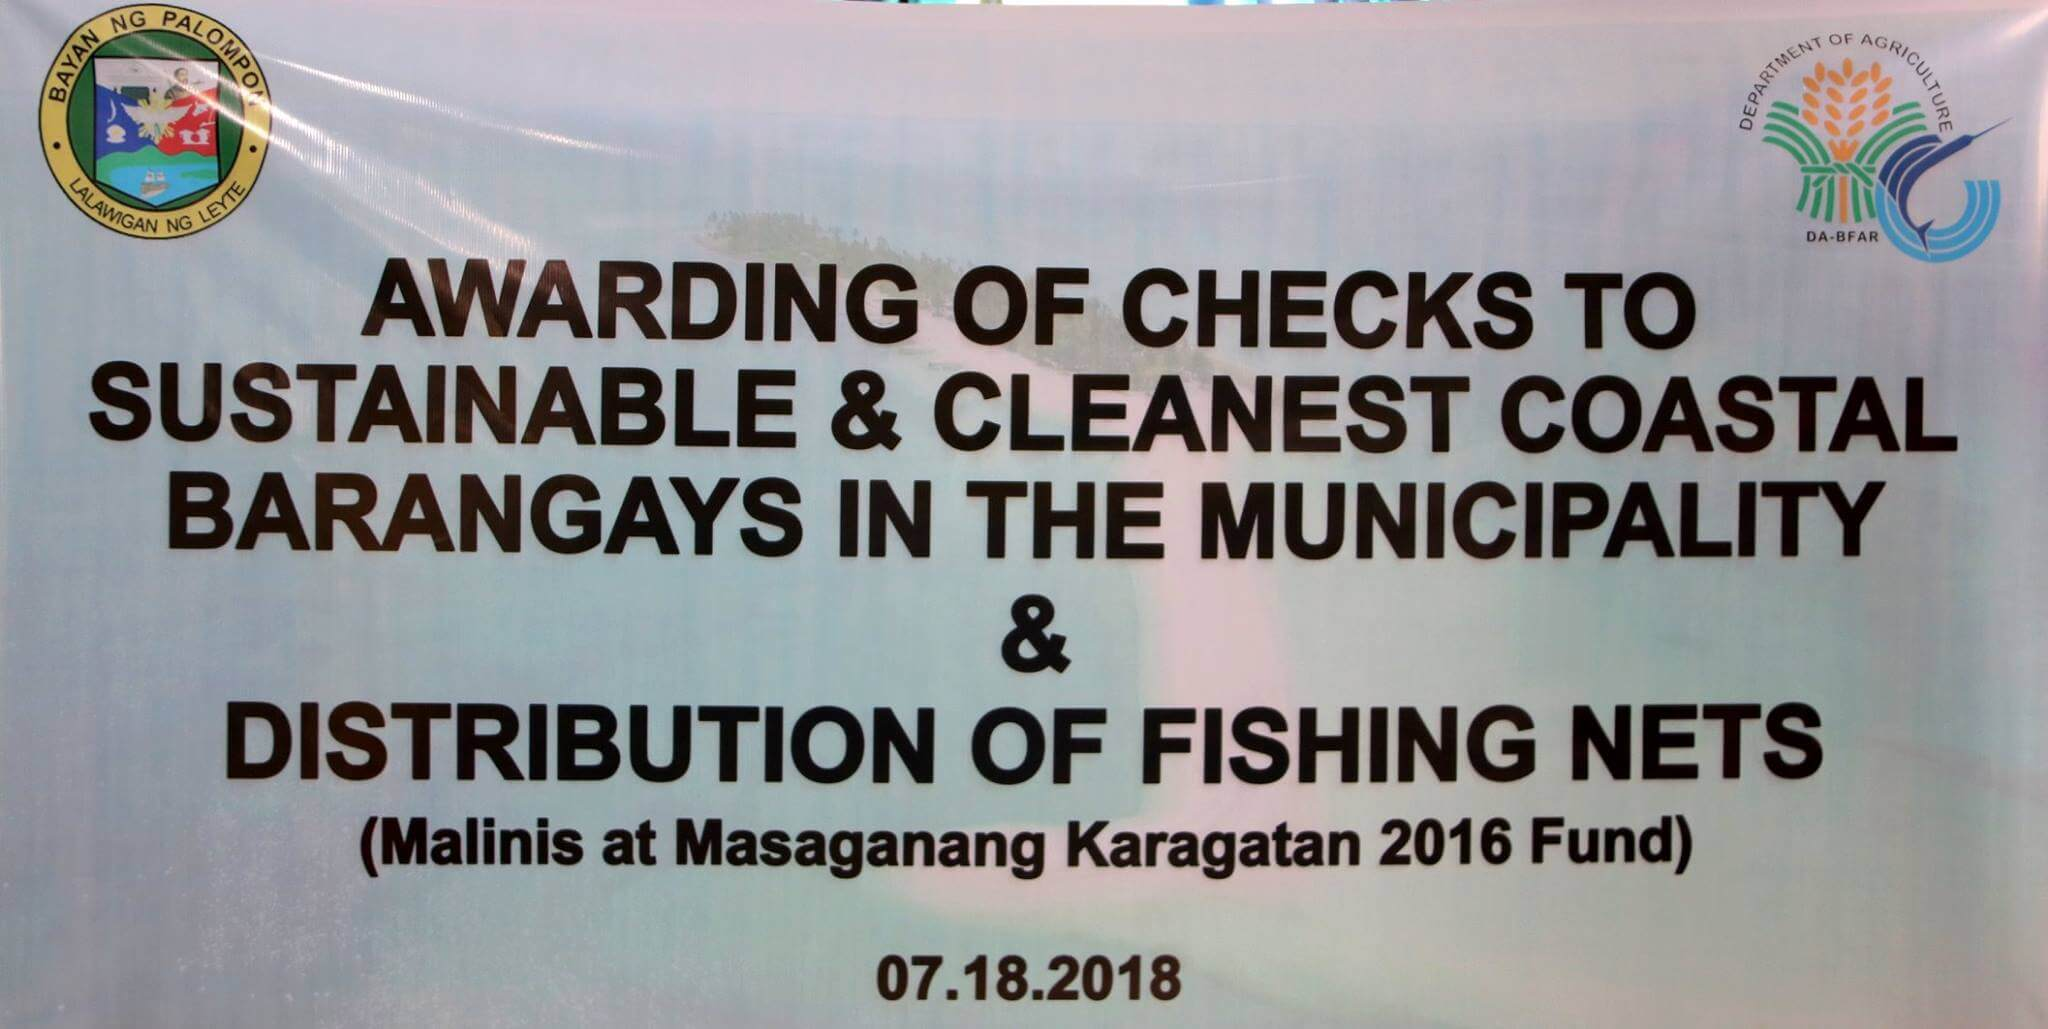 AWARDING OF CHECKS TO SUSTAINABLE & CLEANEST COASTAL BARANGAYS IN THE MUNICIPALITY & DISTRIBUTION OF FISHING NETS